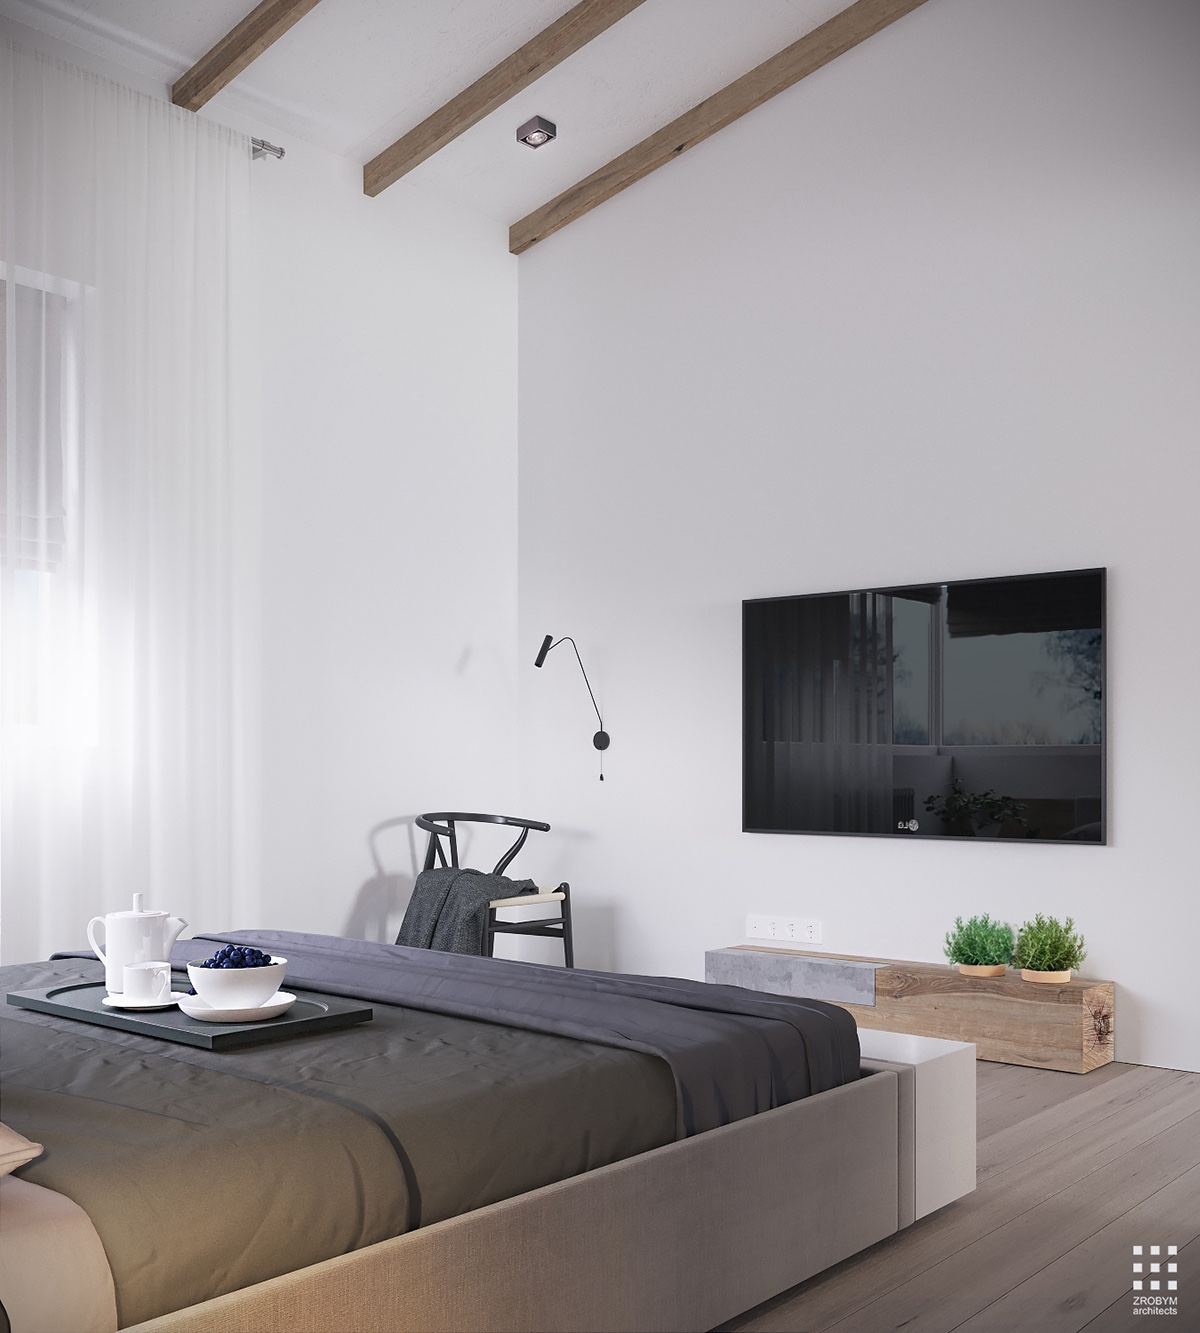 Simple Wood And Concrete Bedroom - An organic modern home with subtle industrial undertones